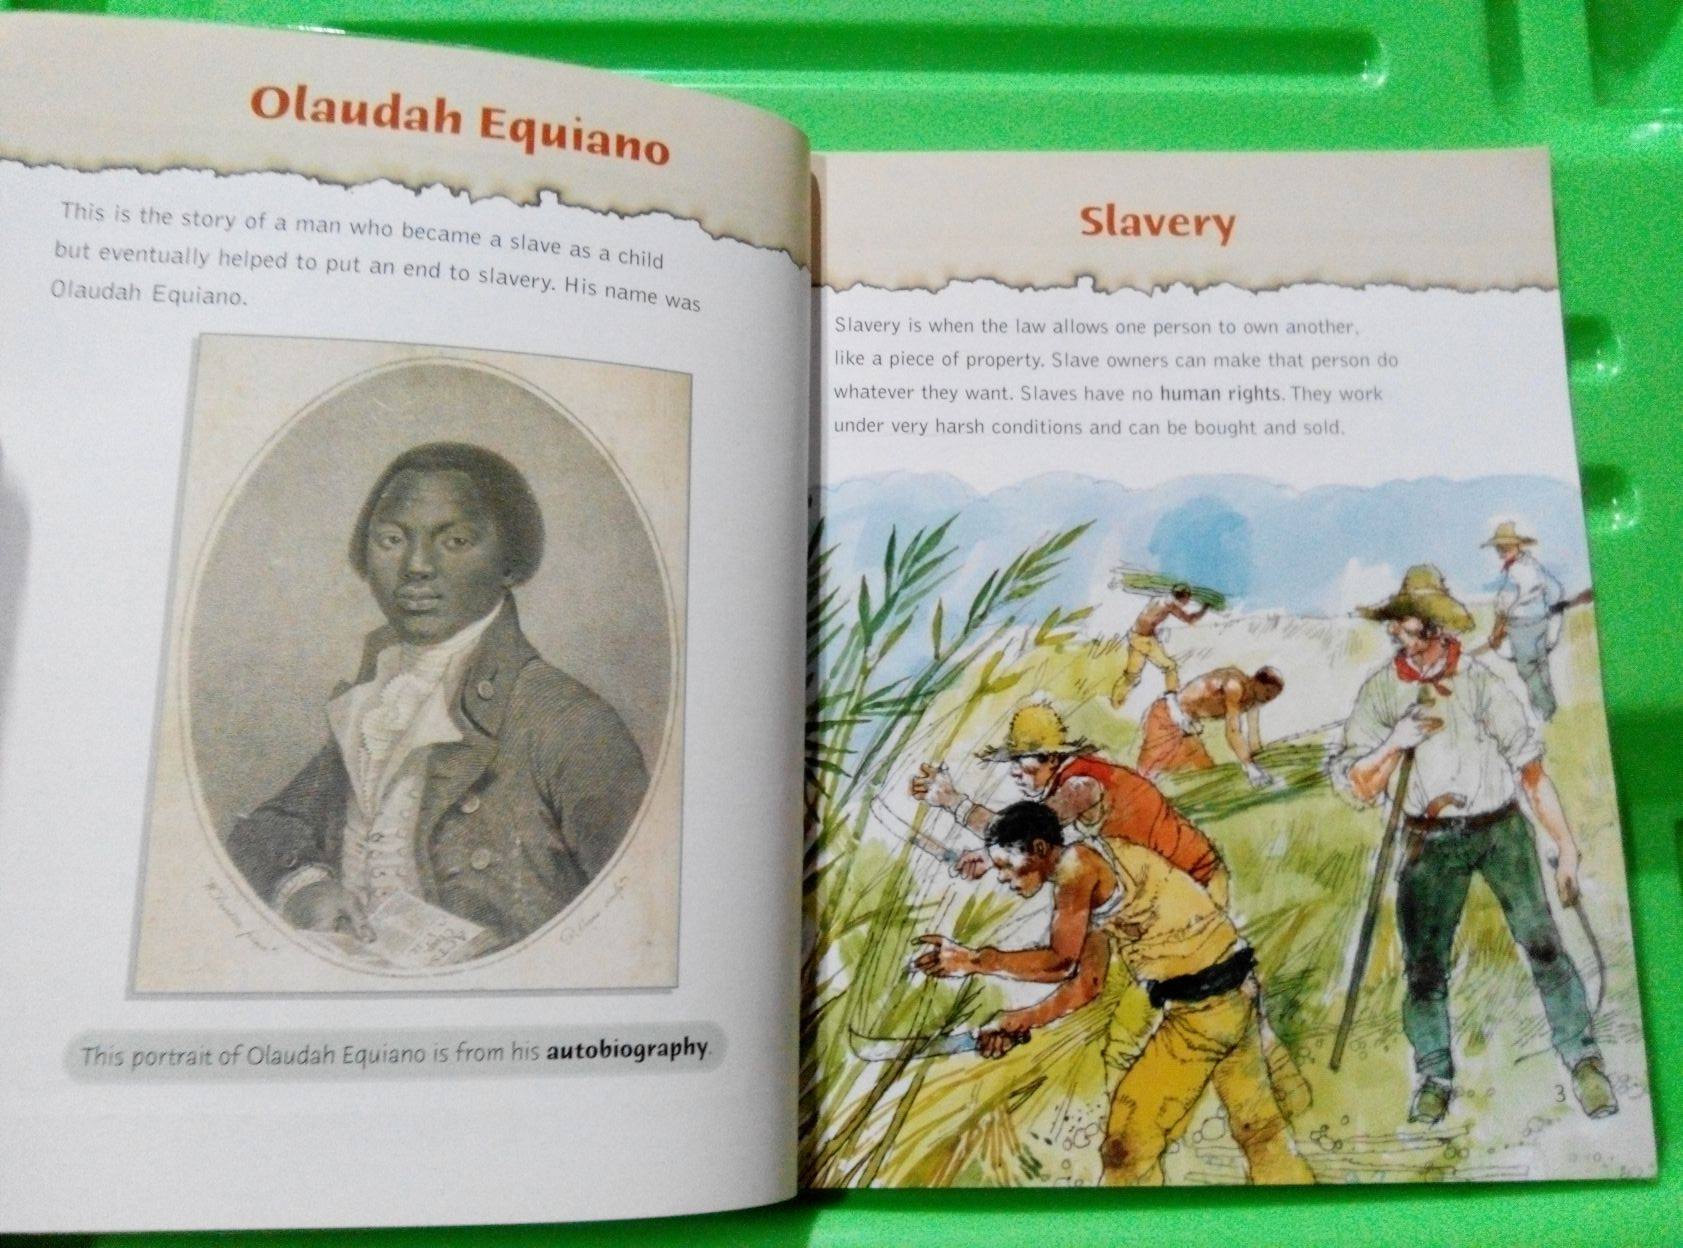 olaudh equiano abraham lincoln and frederick douglas the three writers who helped the abolitionist m Olaudah equiano - arrival abolition of slavery in the americas 'ps banshee' by samuel walters frederick douglas (1818-1895.